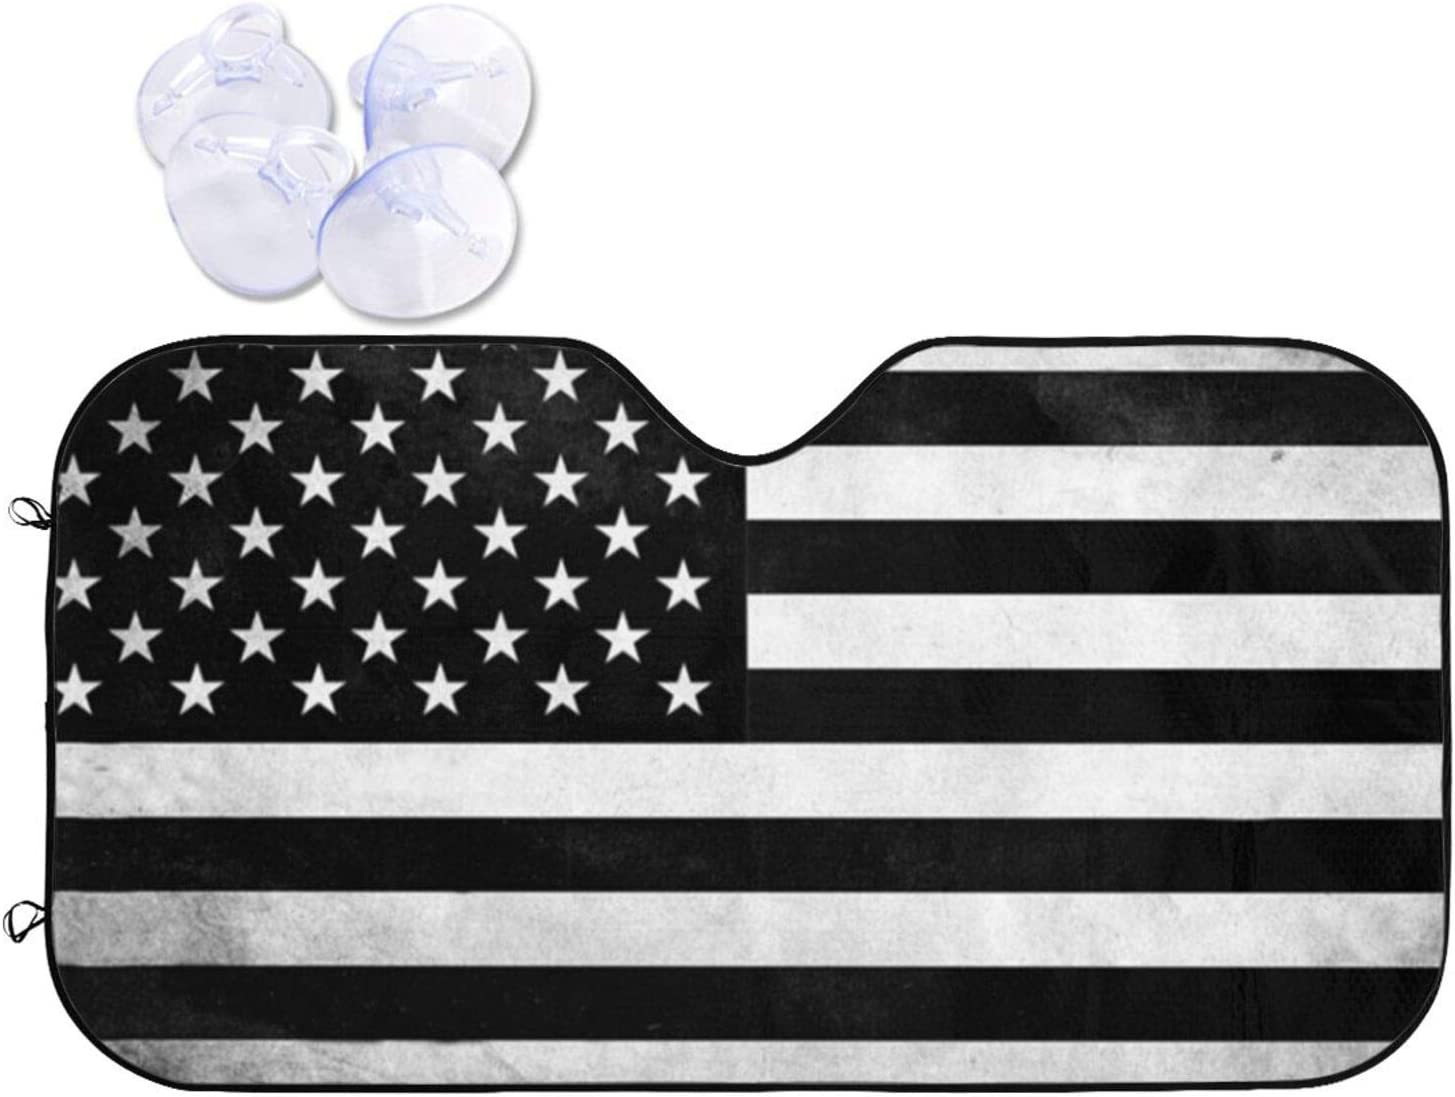 Black Recommendation White American Flag Windshield Sun Auto Car Fron Shade for Popular brand in the world